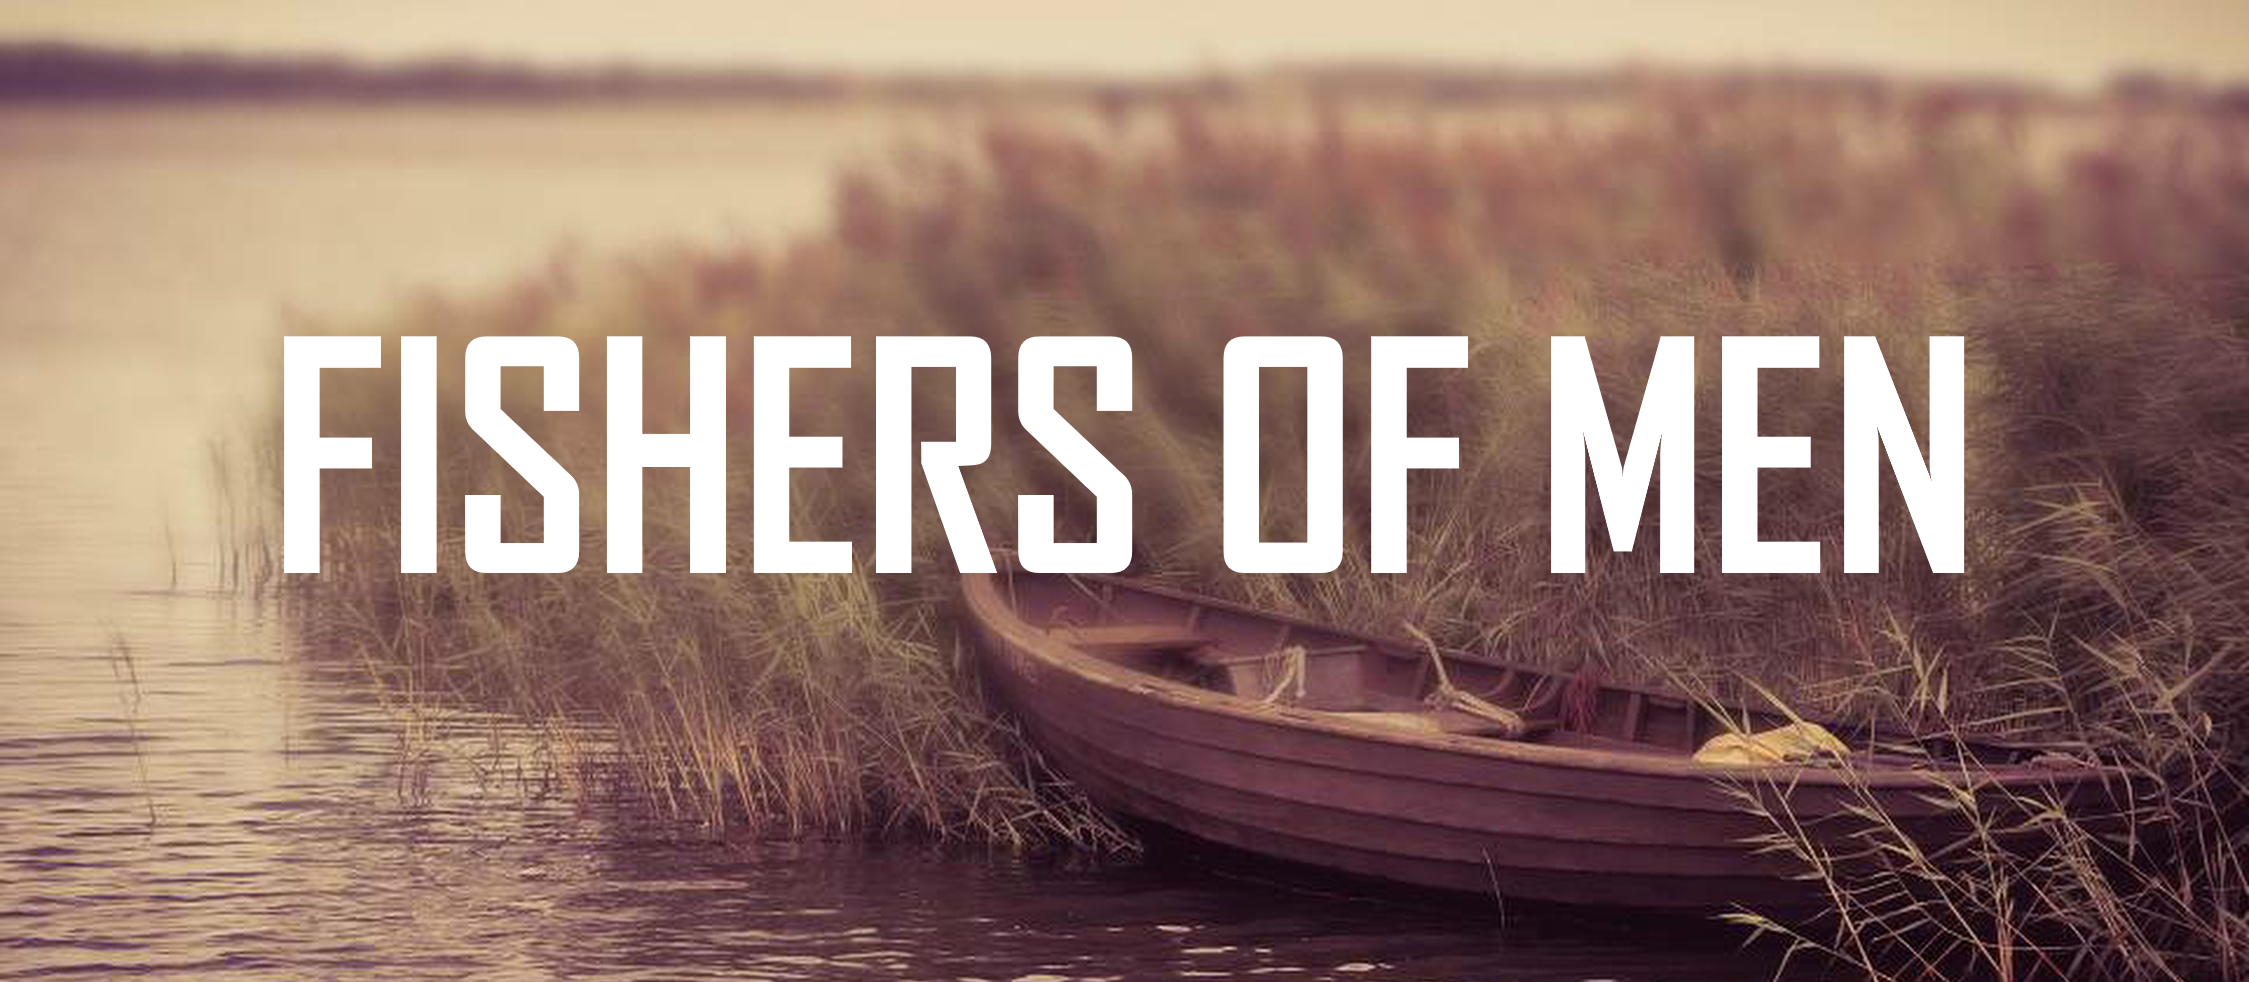 Fishers of Men.png